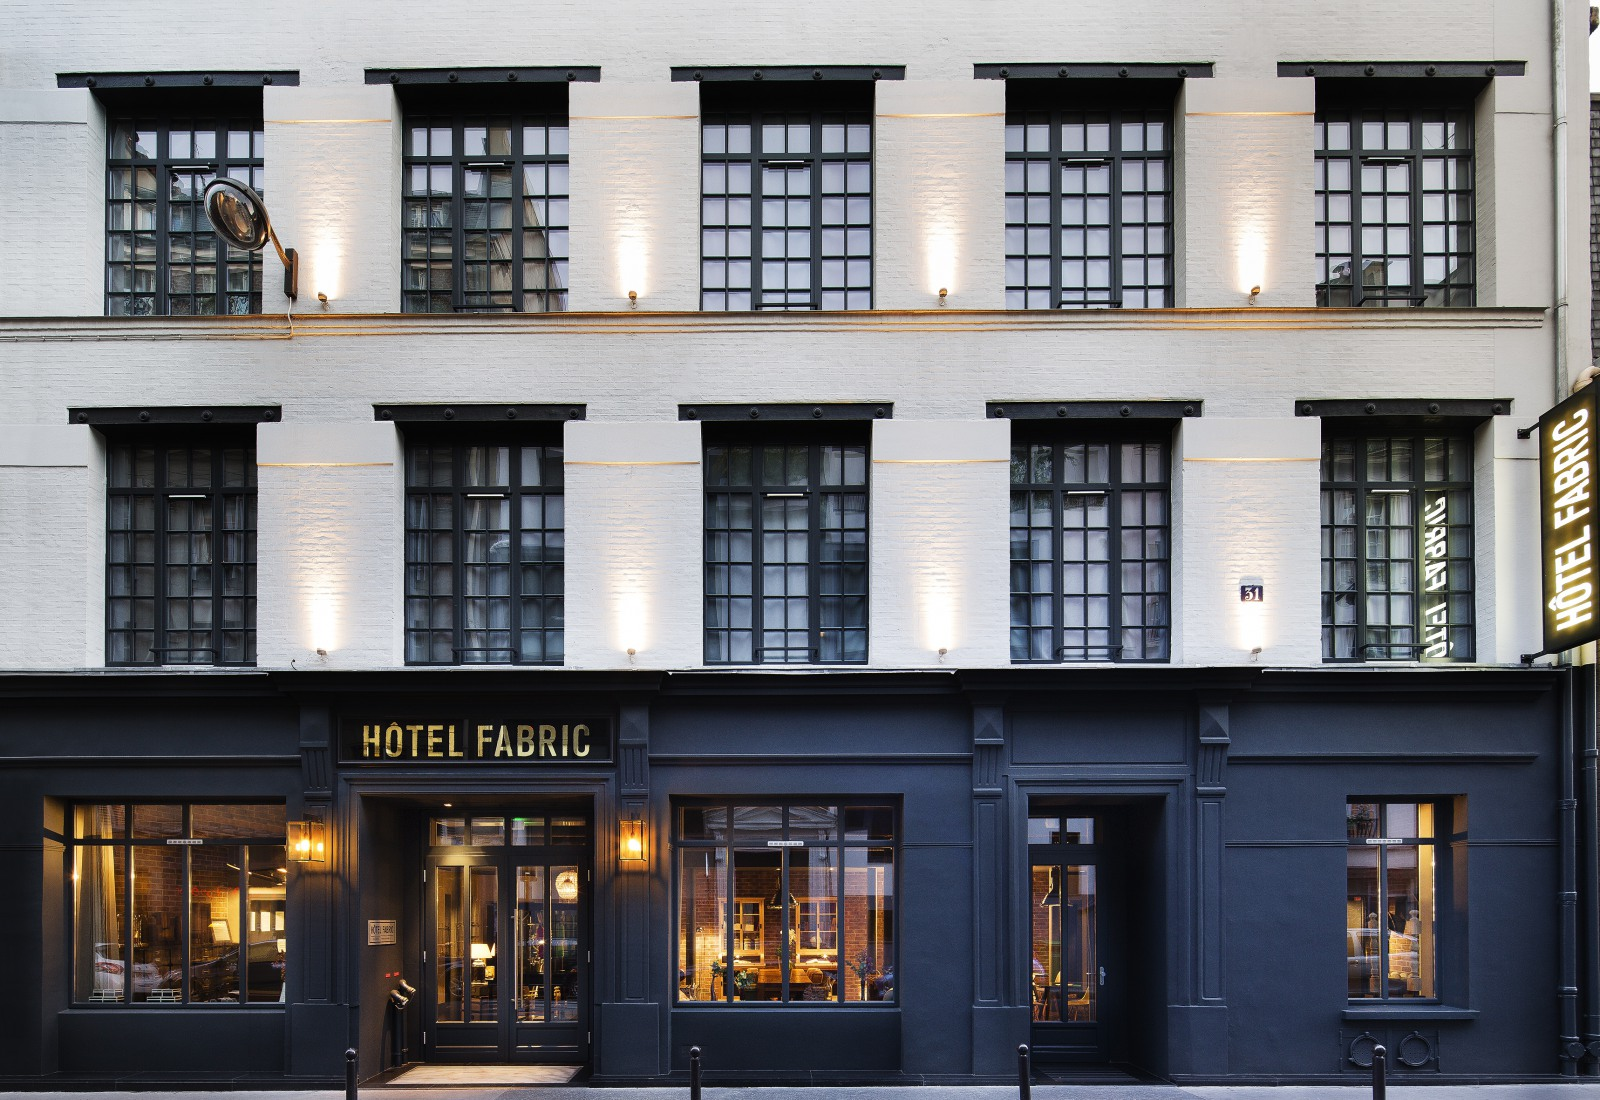 Stay in paris fabric hotel 75011 trendy oberkampf area for Hotel jardins paris